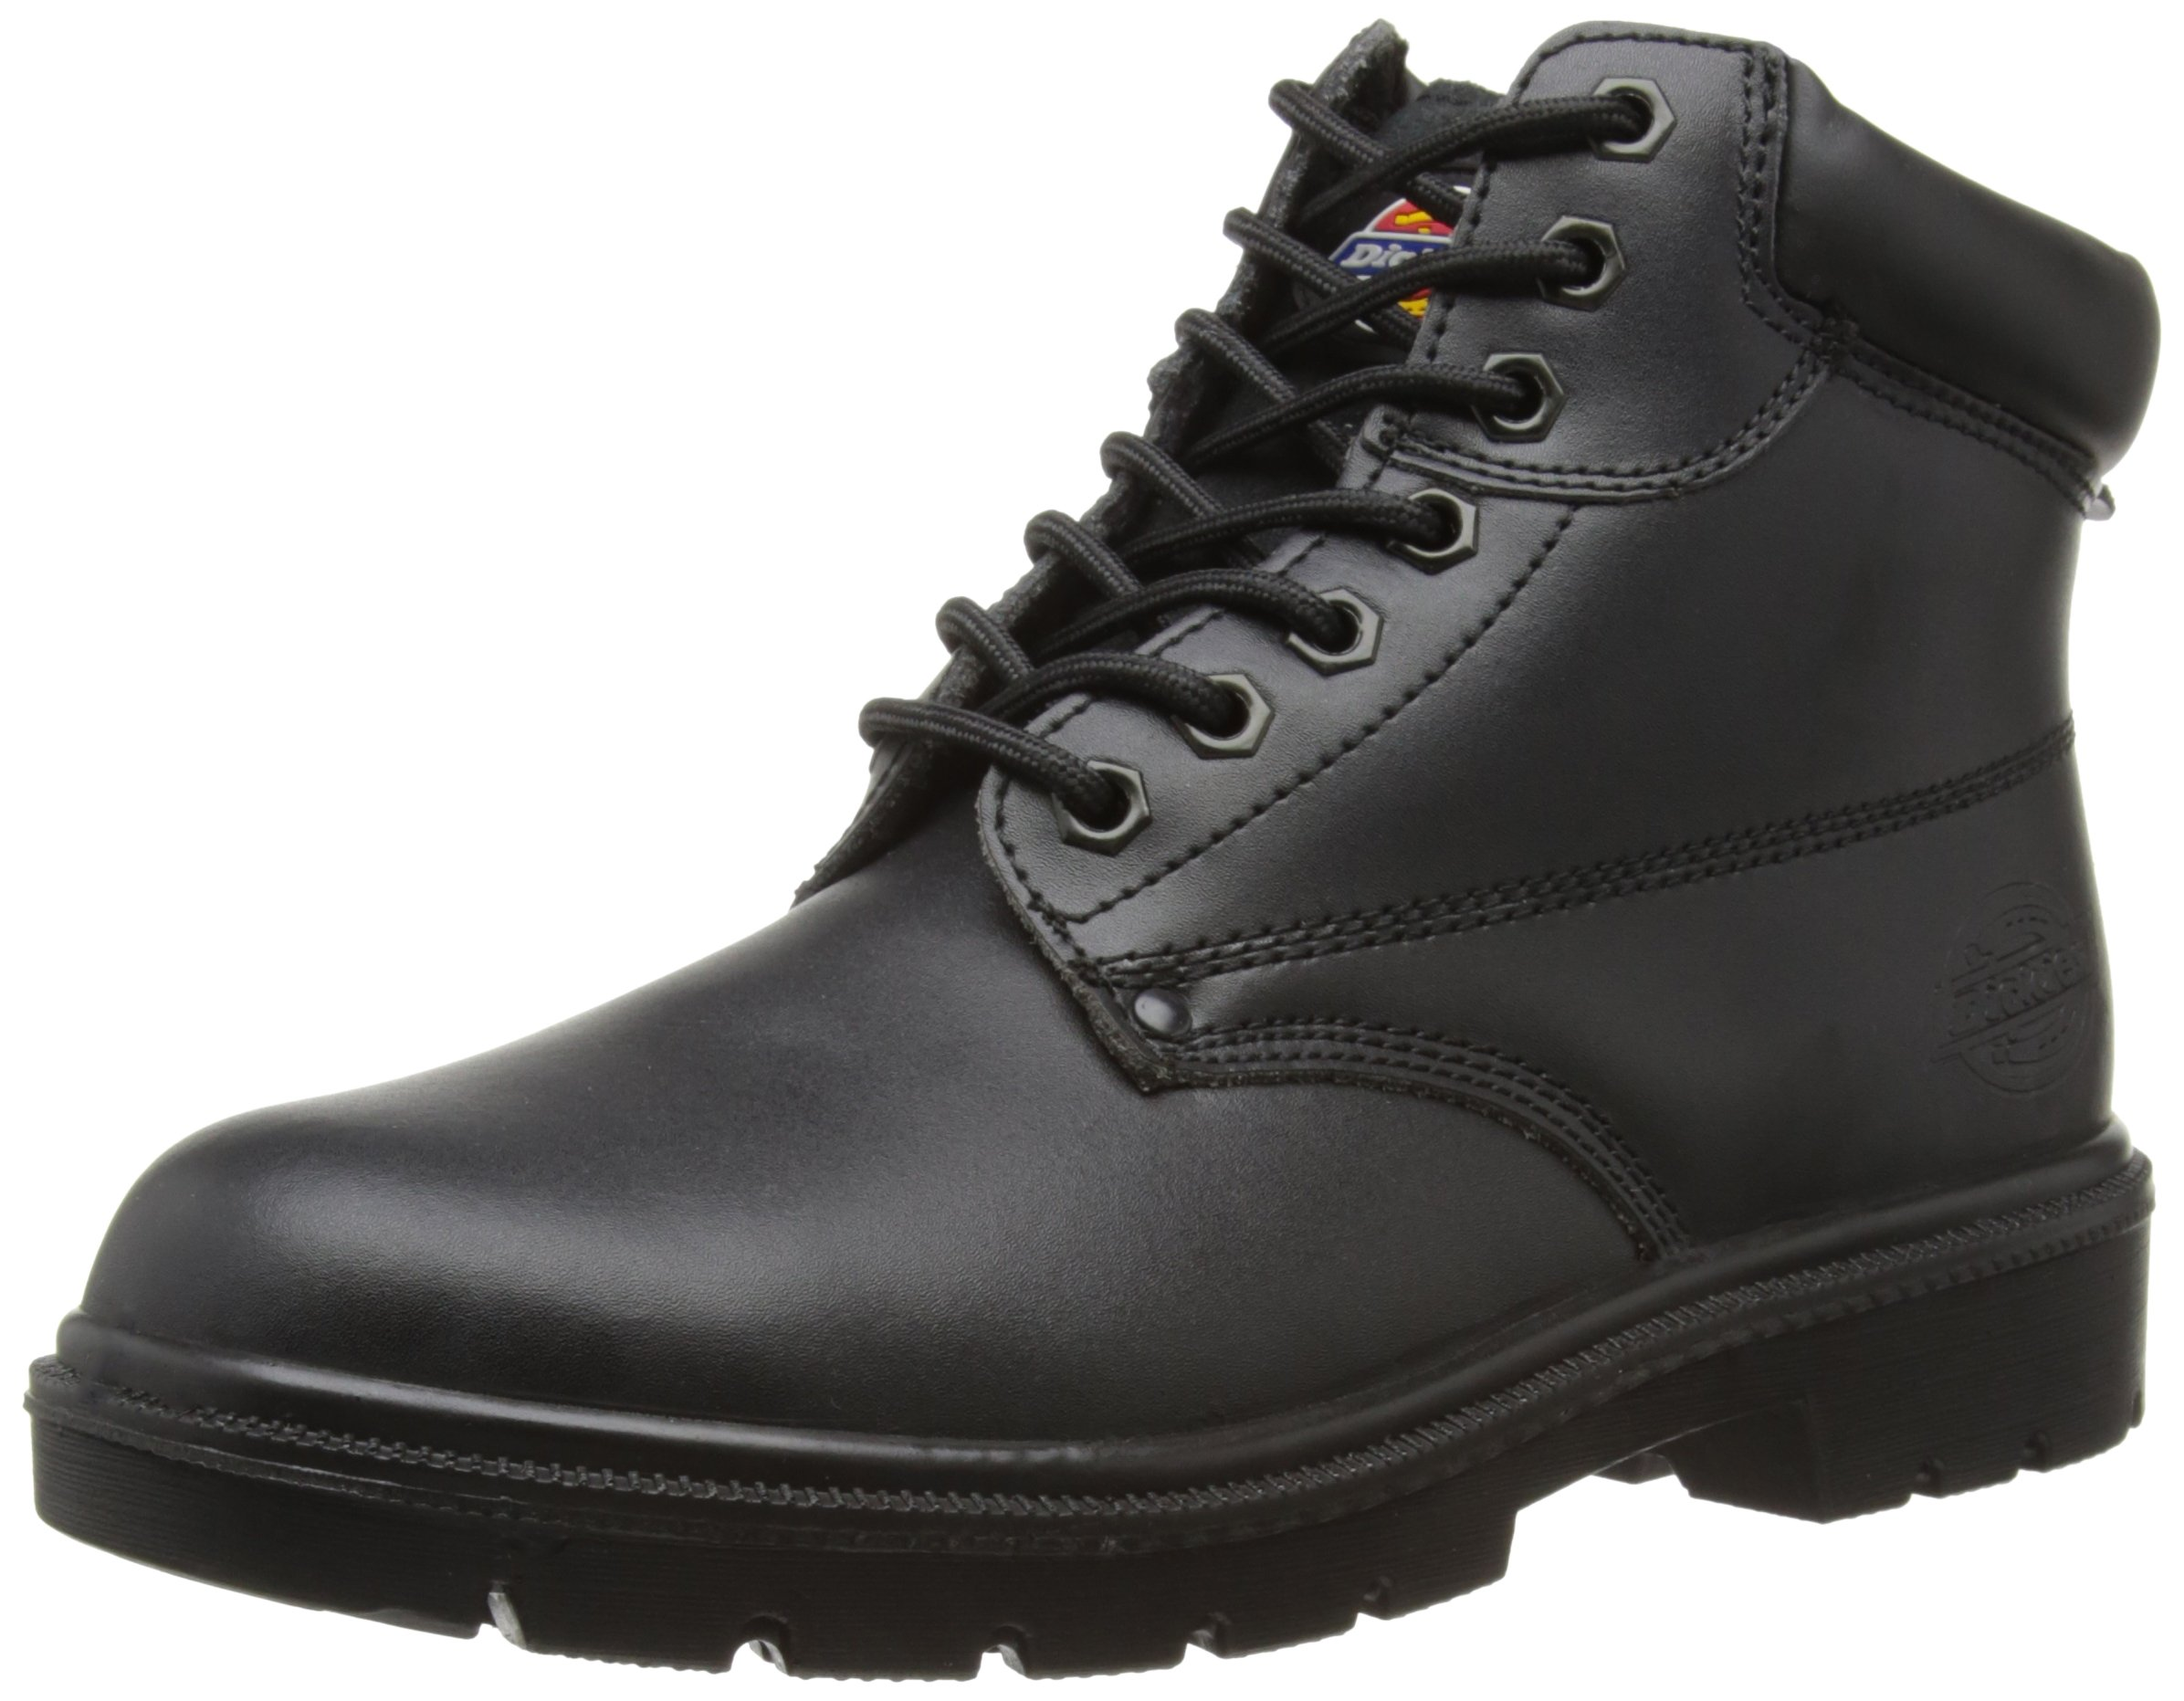 Dickies Unisex Antrim Super Steel Toe-cap Safety Boot / Footwear (9.5 US) (Black)